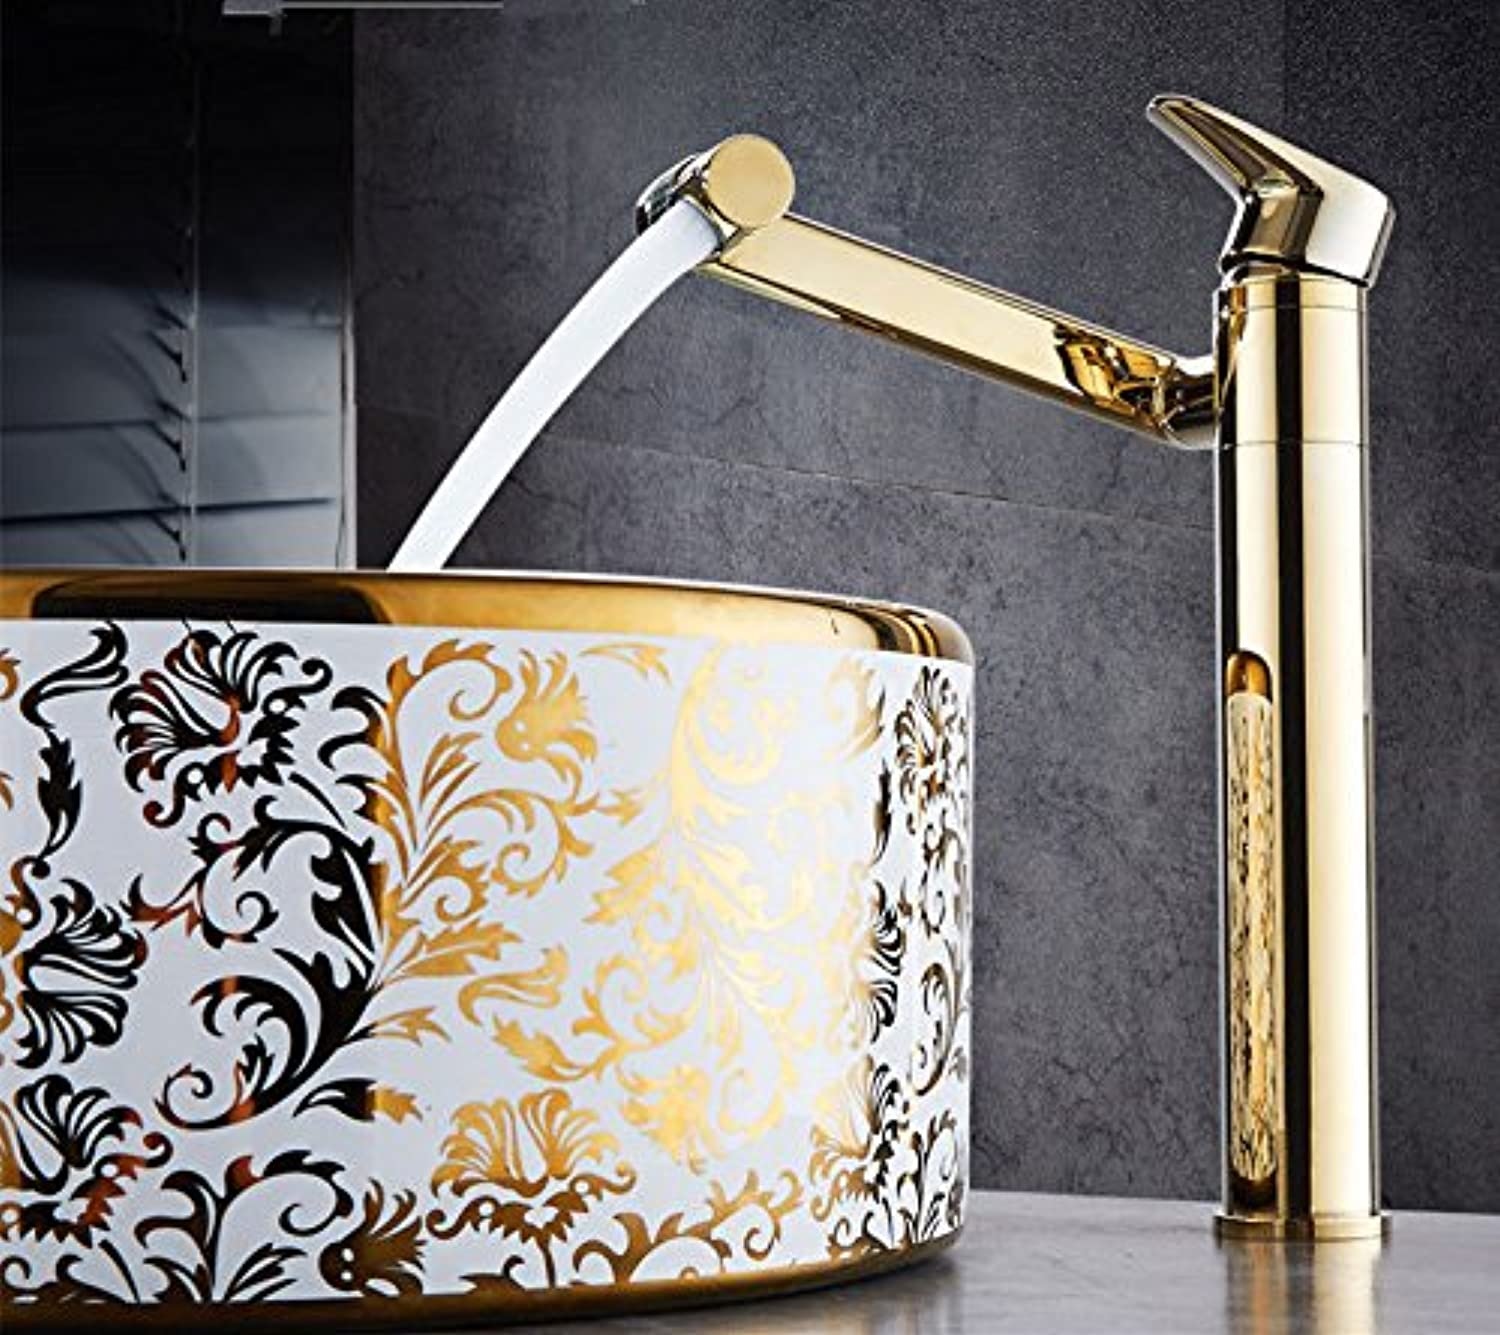 Modern simple copper hot and cold kitchen sink taps kitchen faucet Copper single hole basin faucet hot and cold redating gold Suitable for all bathroom kitchen sinks